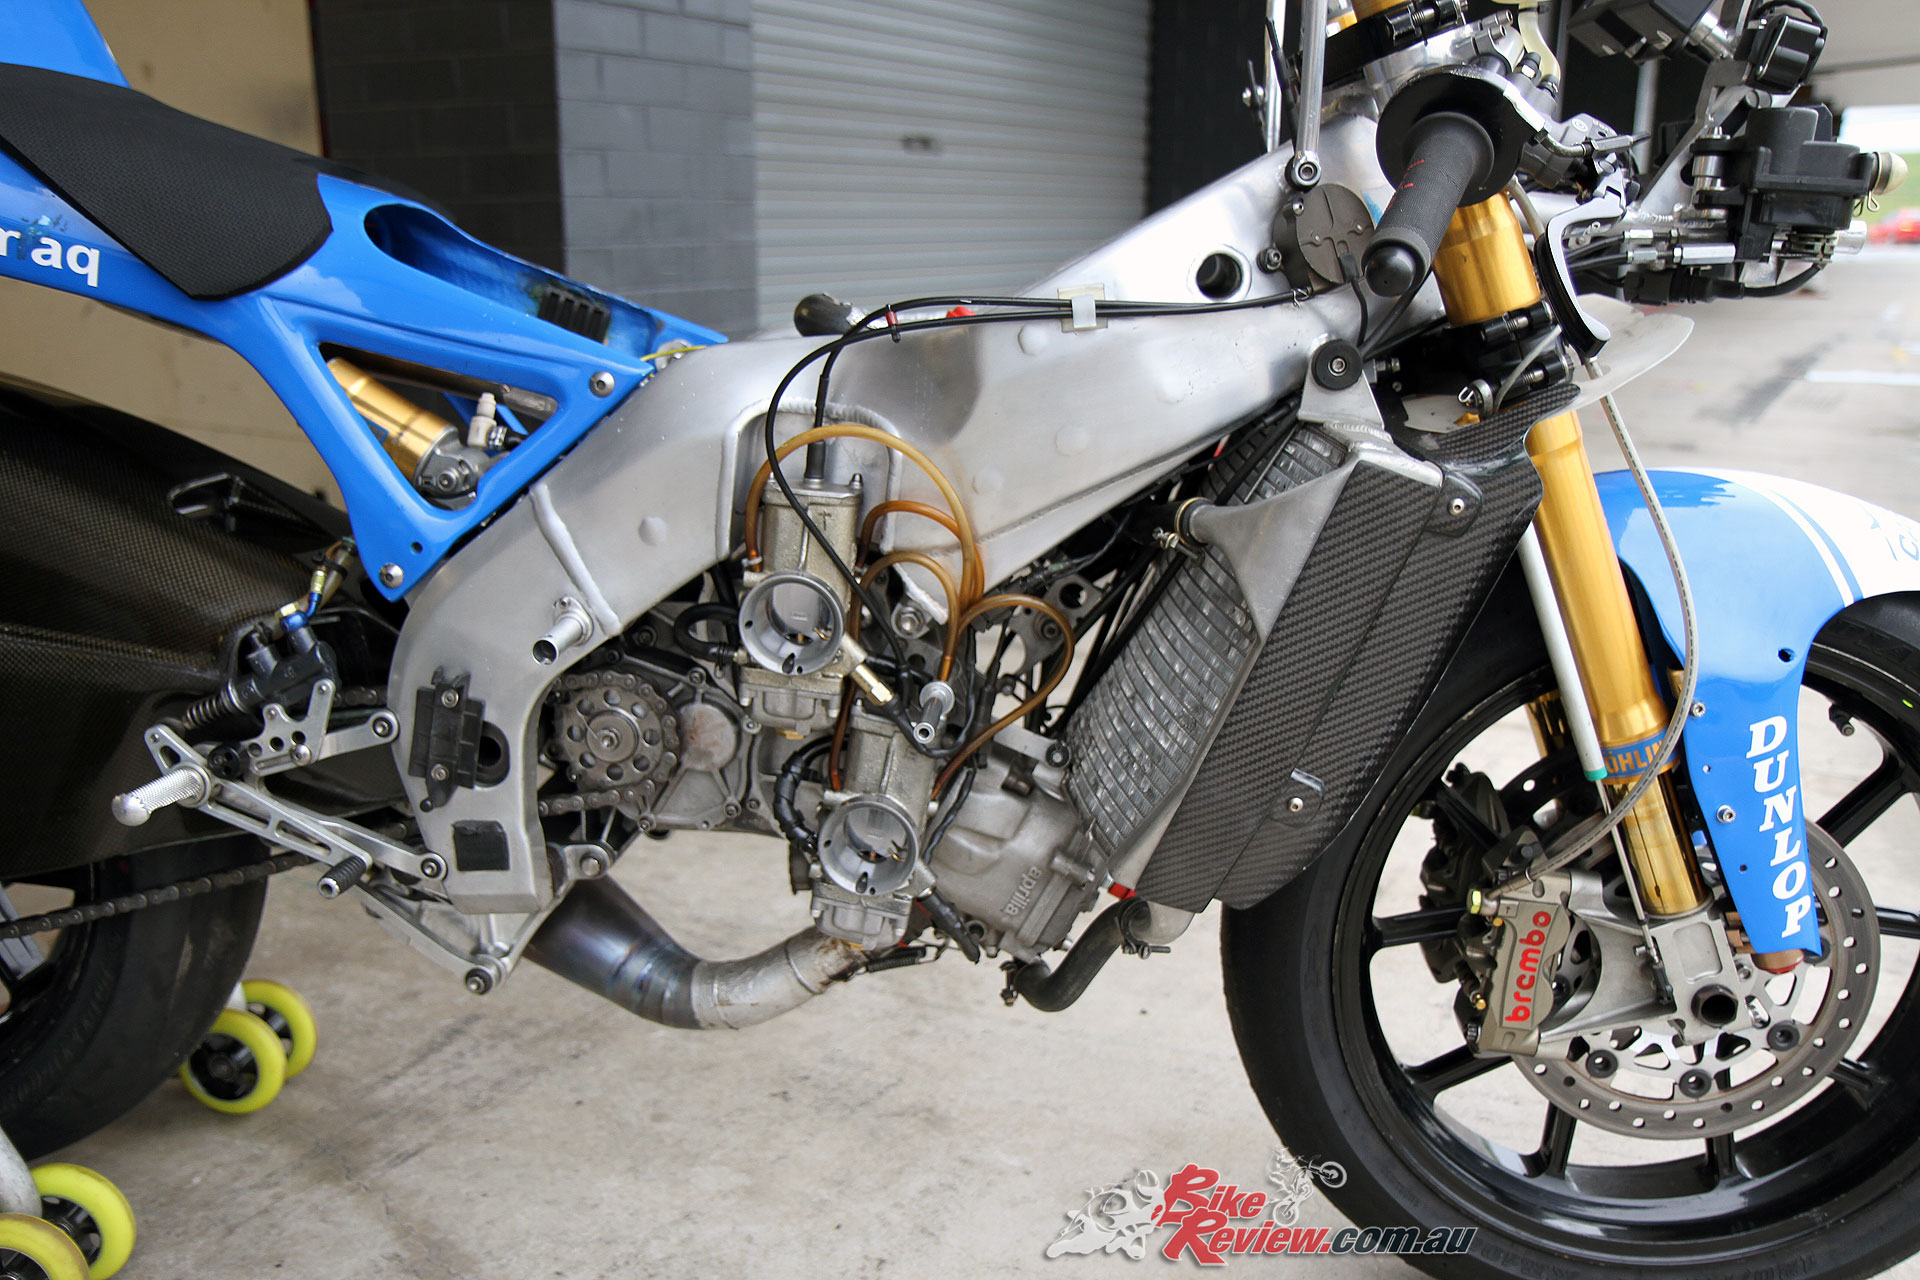 In all its glory - The Aprilia RSW250 with 42mm VHSE flat slide magnesium carburettors are rare and expensive